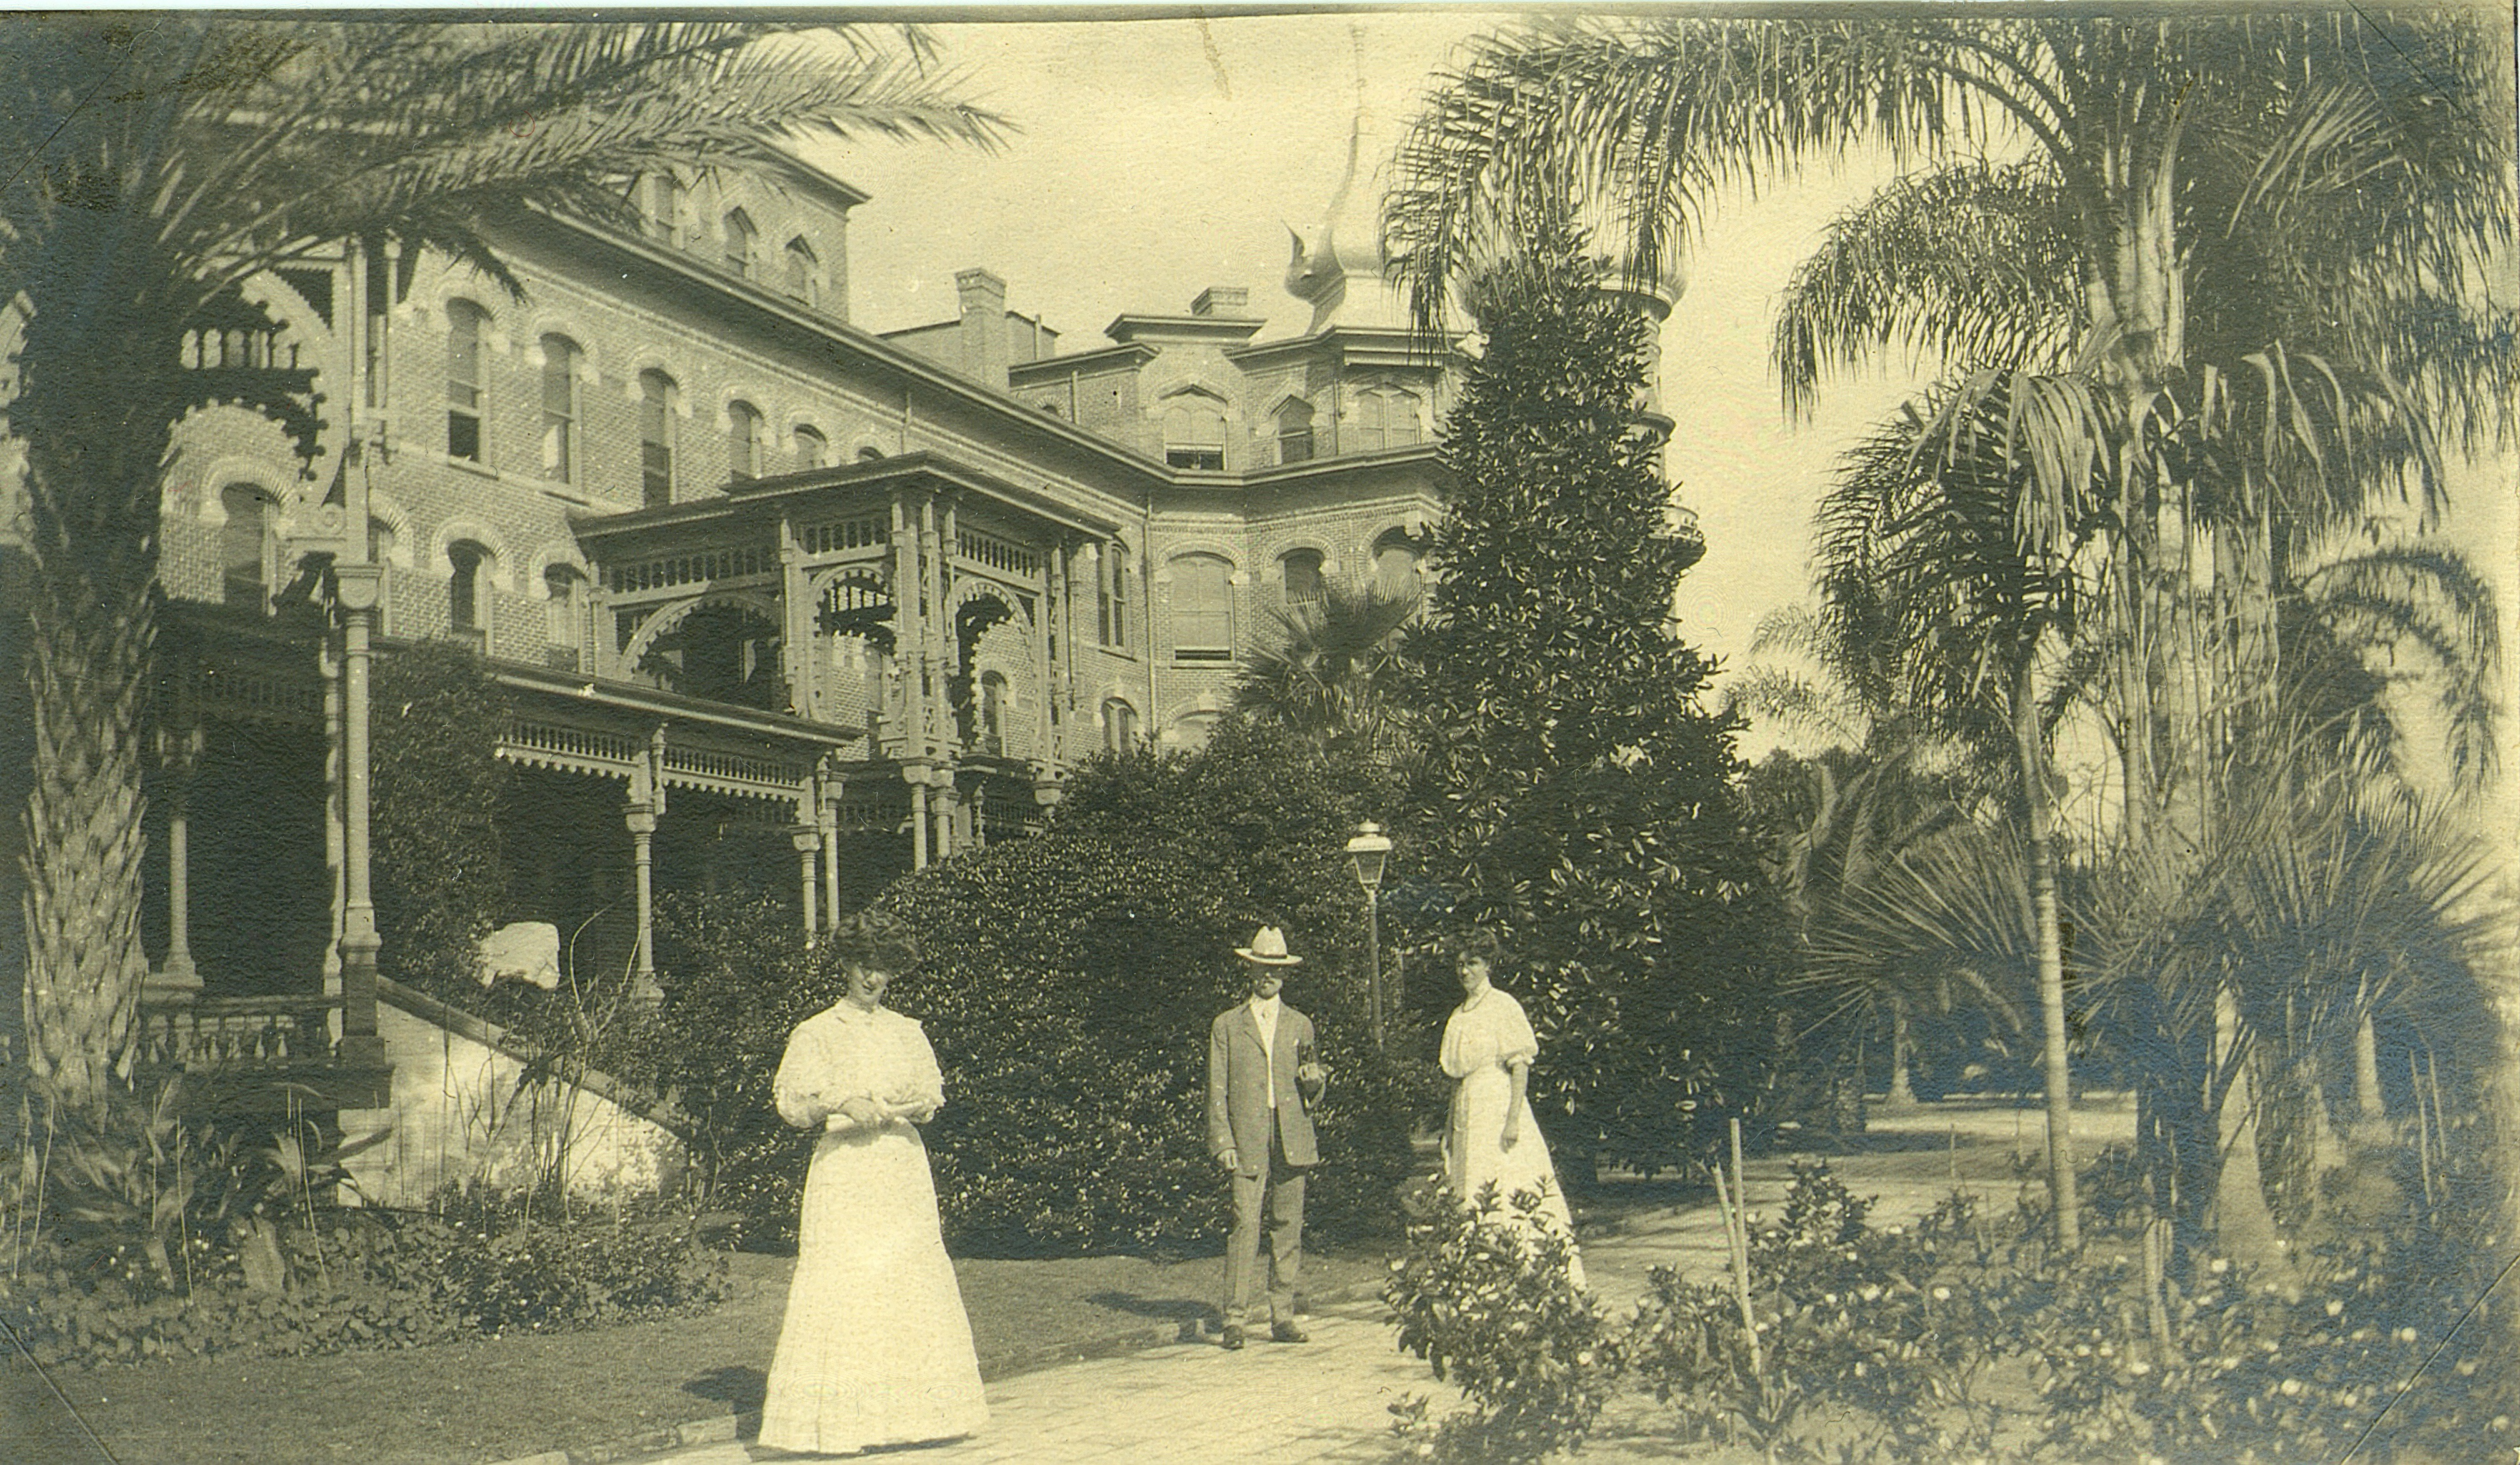 2 women and 1 man in old-fashioned clothing standing in front of hotel, surrounded by lush plants